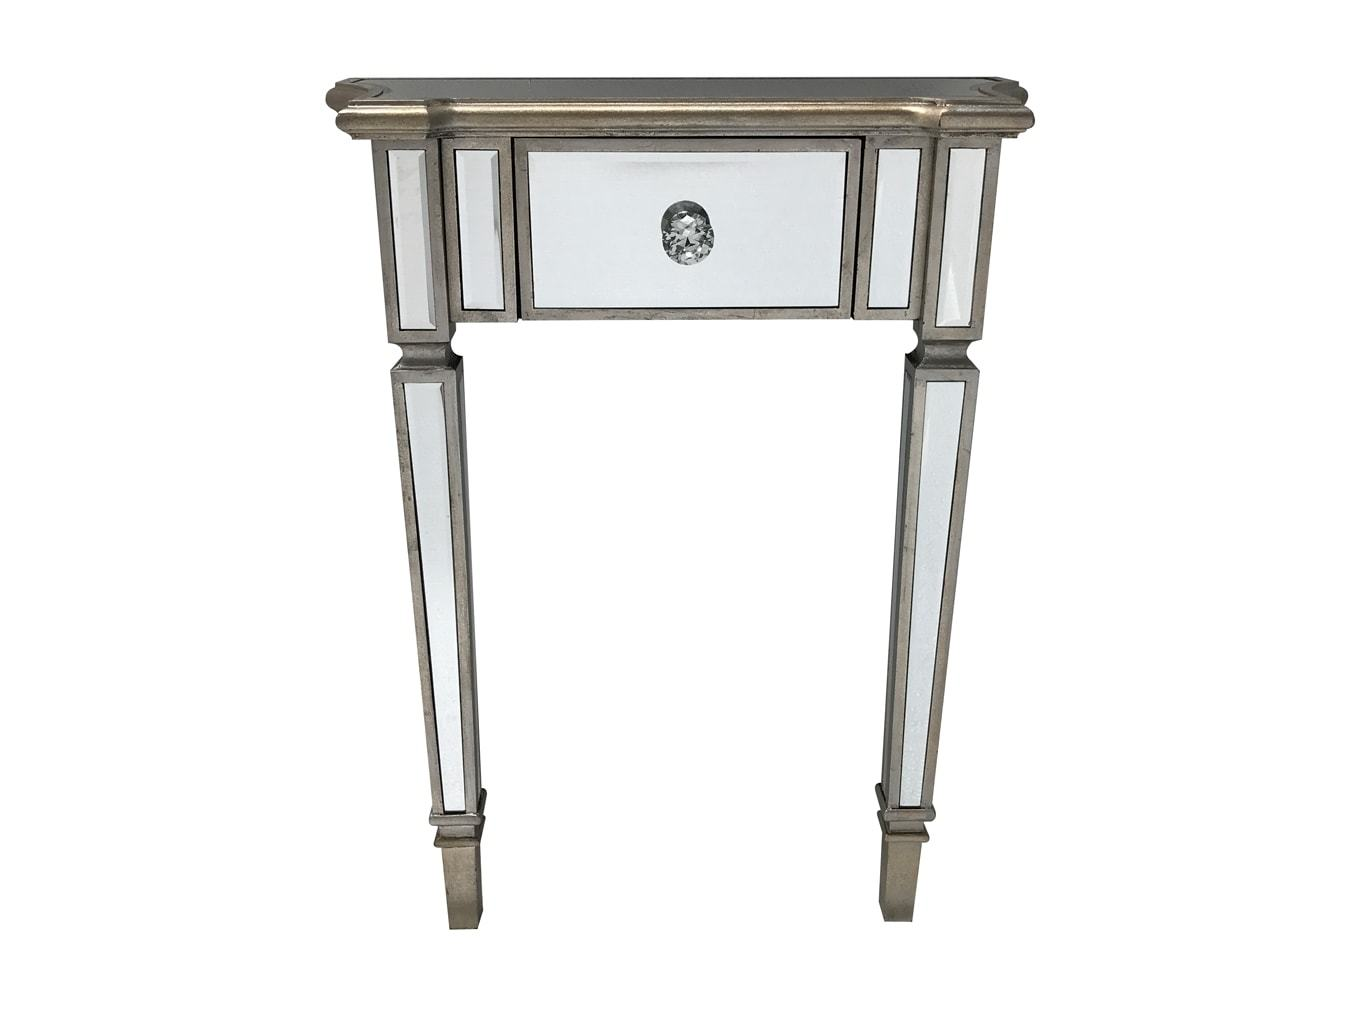 mirrored console table with one drawer and diamante handle